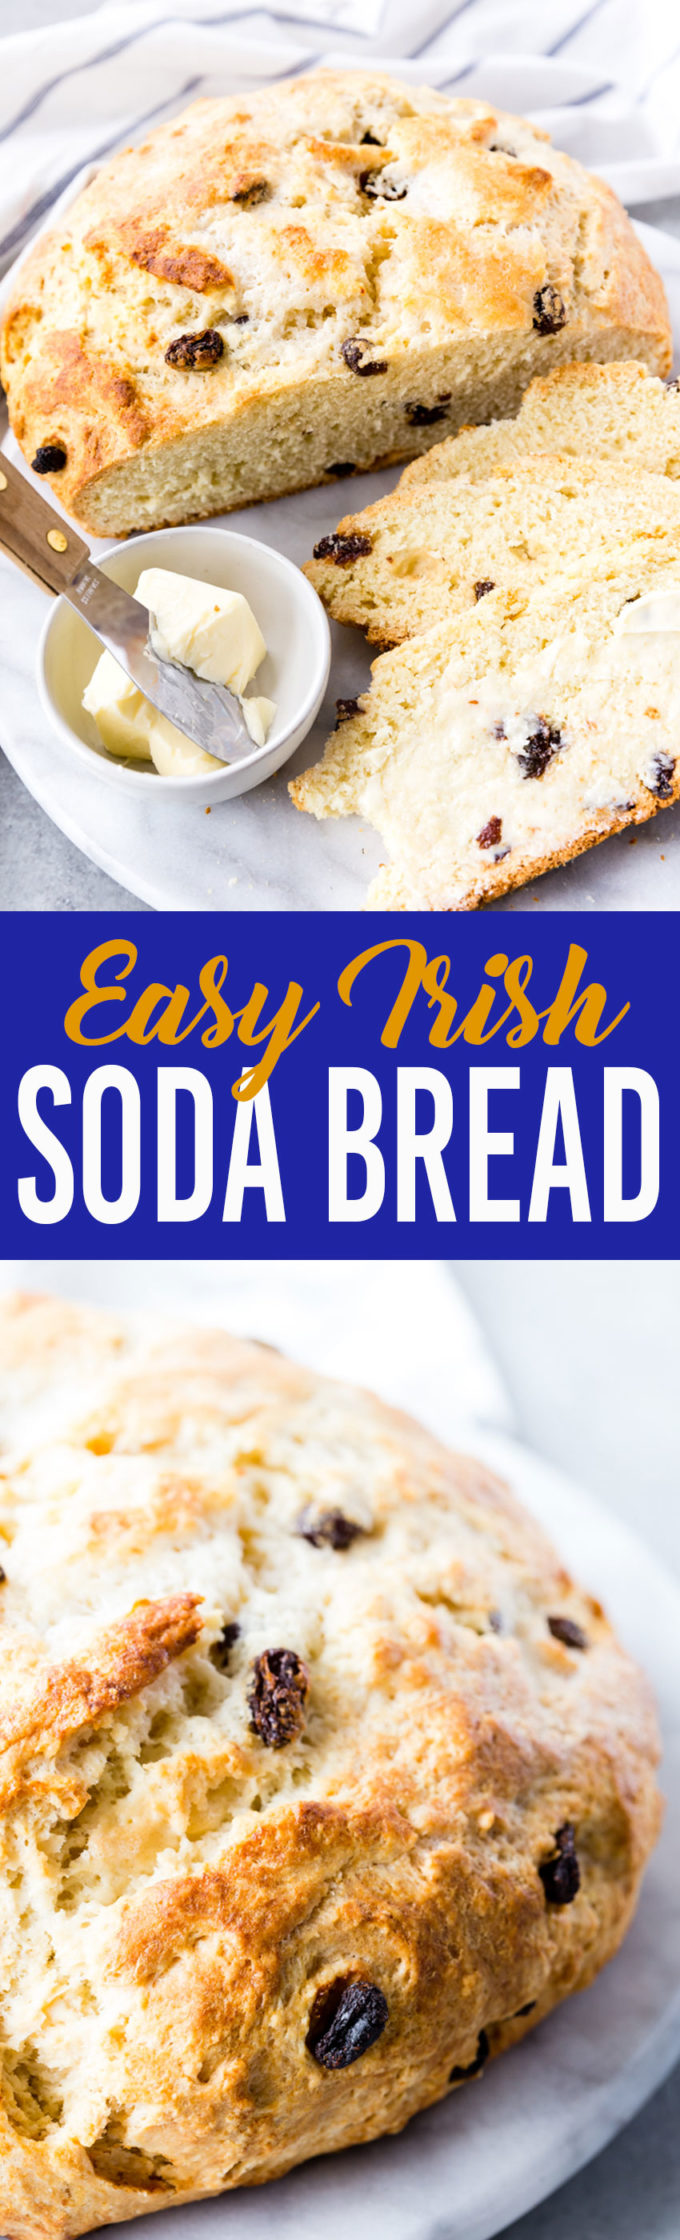 Easy Irish Soda Bread has a dense flavor, crisp crust, and so much flavor.